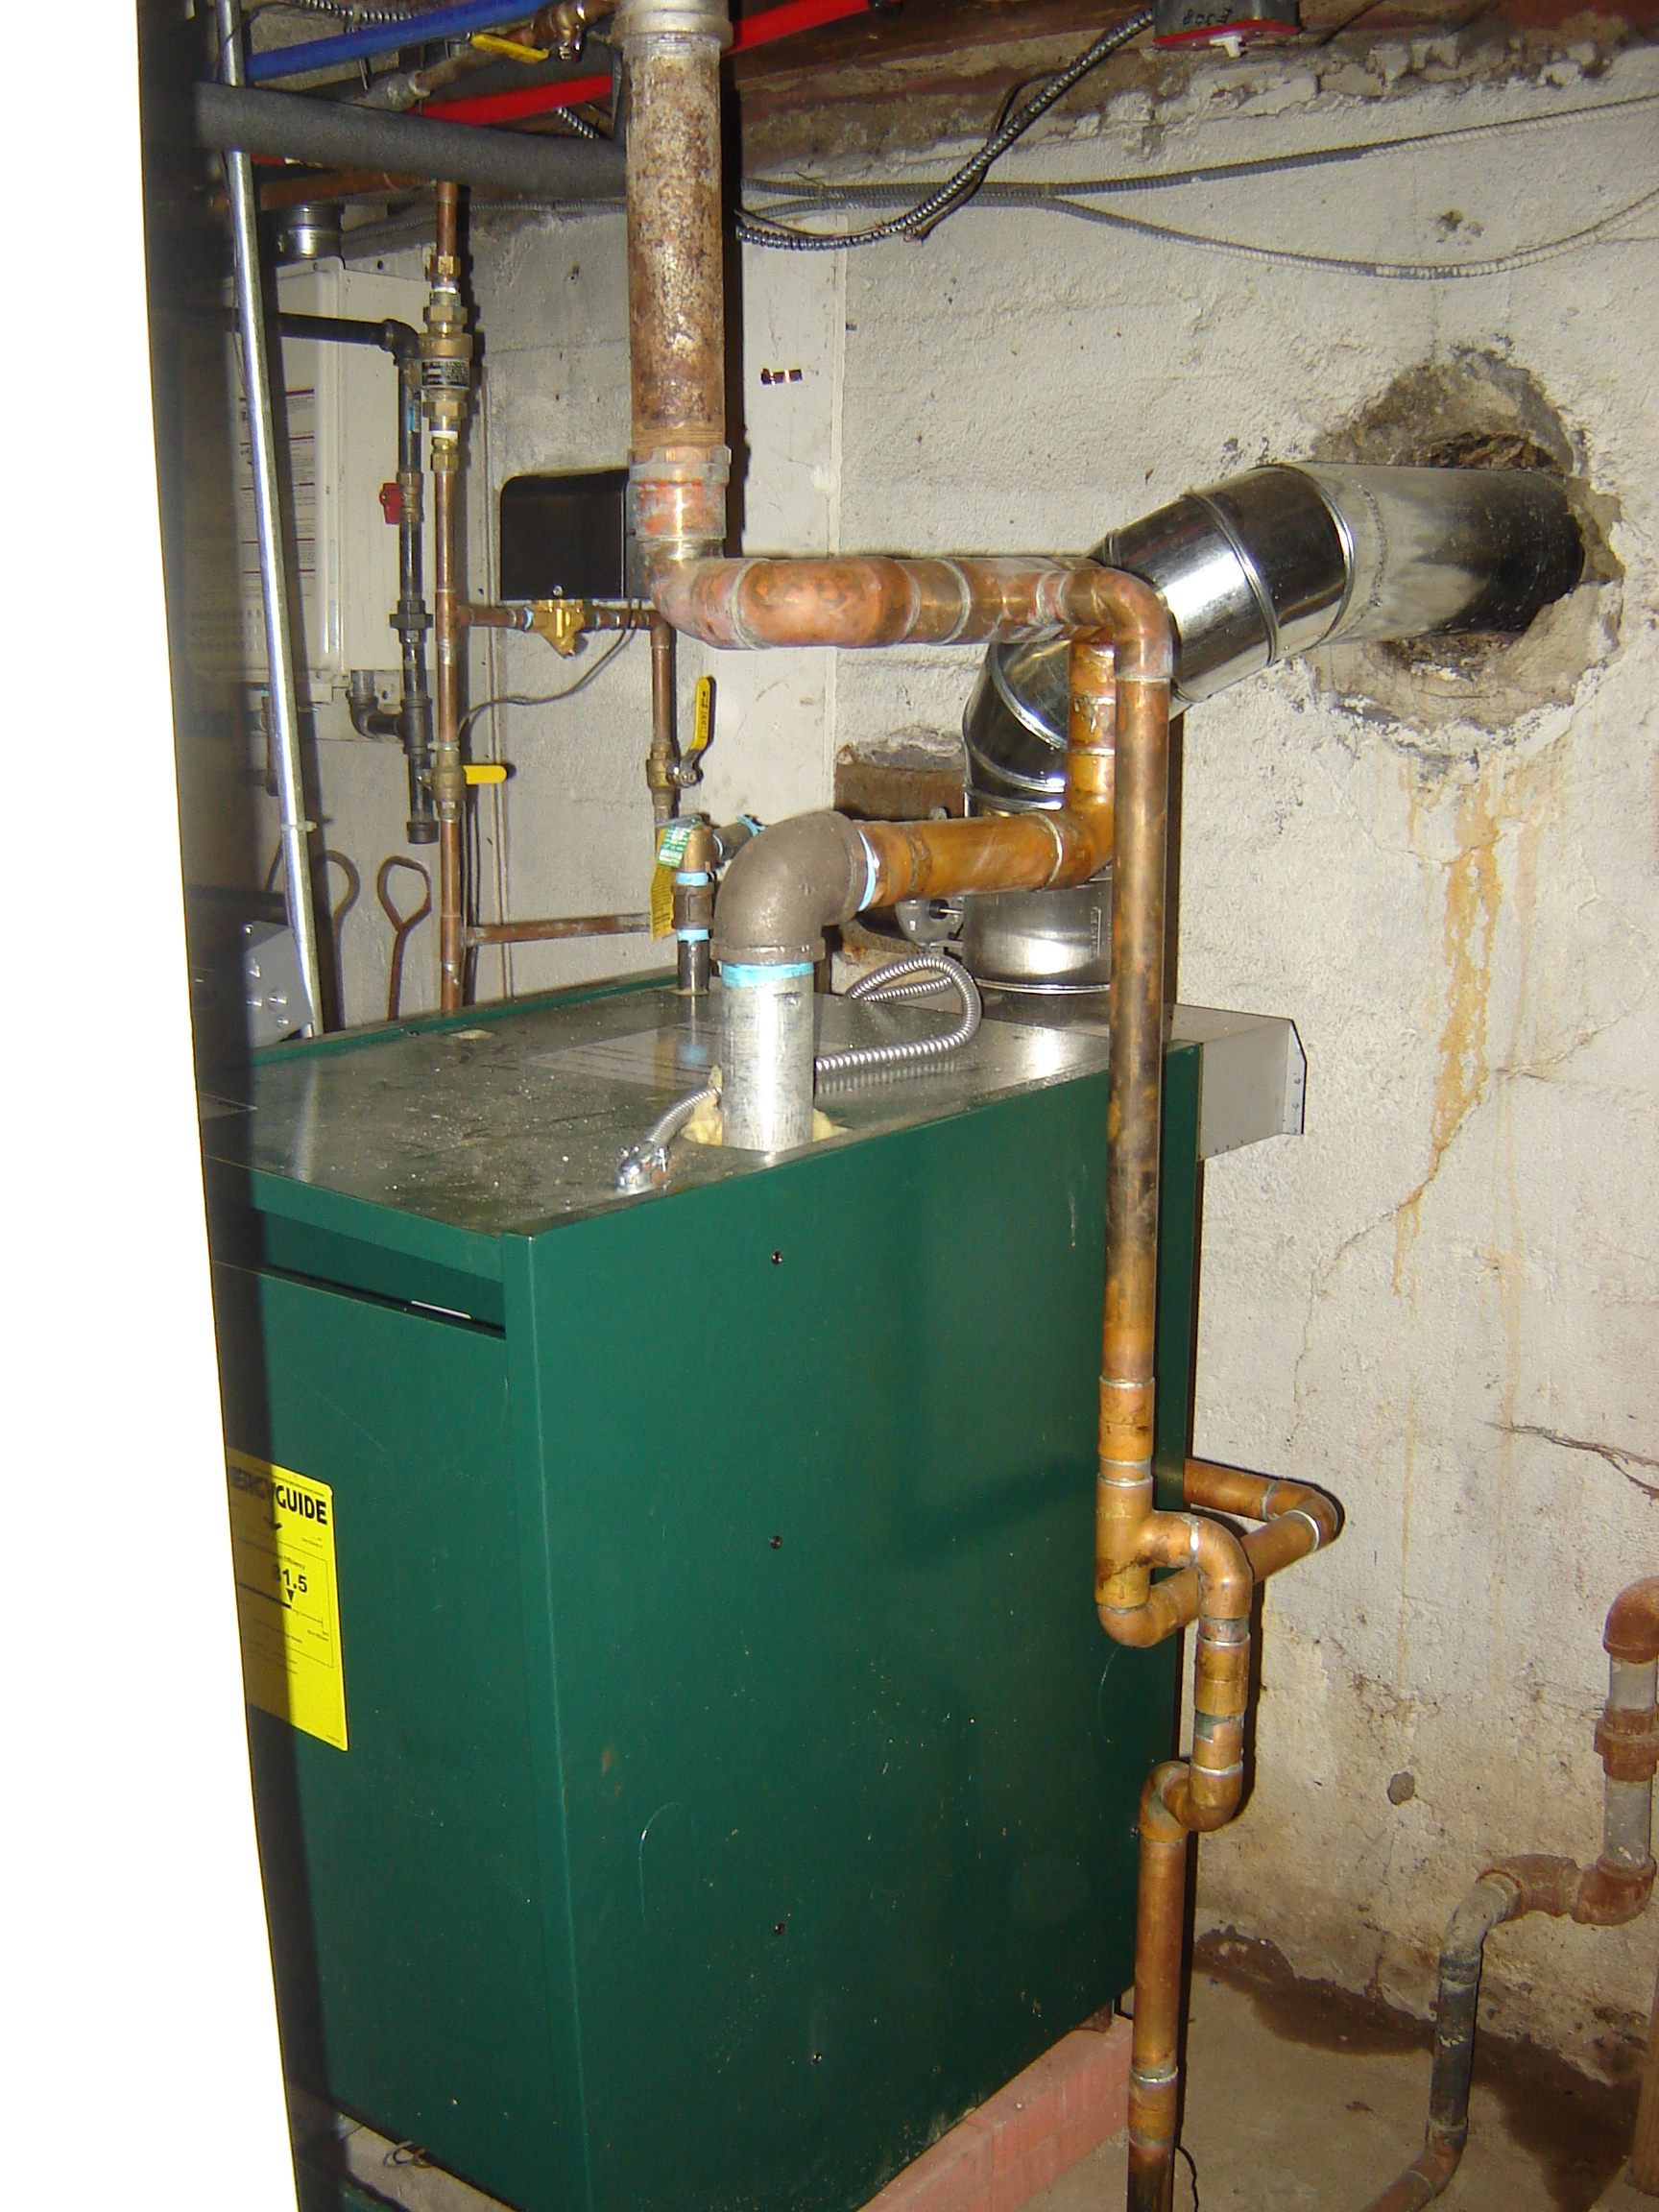 education should water or starts services boiler on feeder good new what is information ct need installation you heater every deal heating fired process info with oil a before